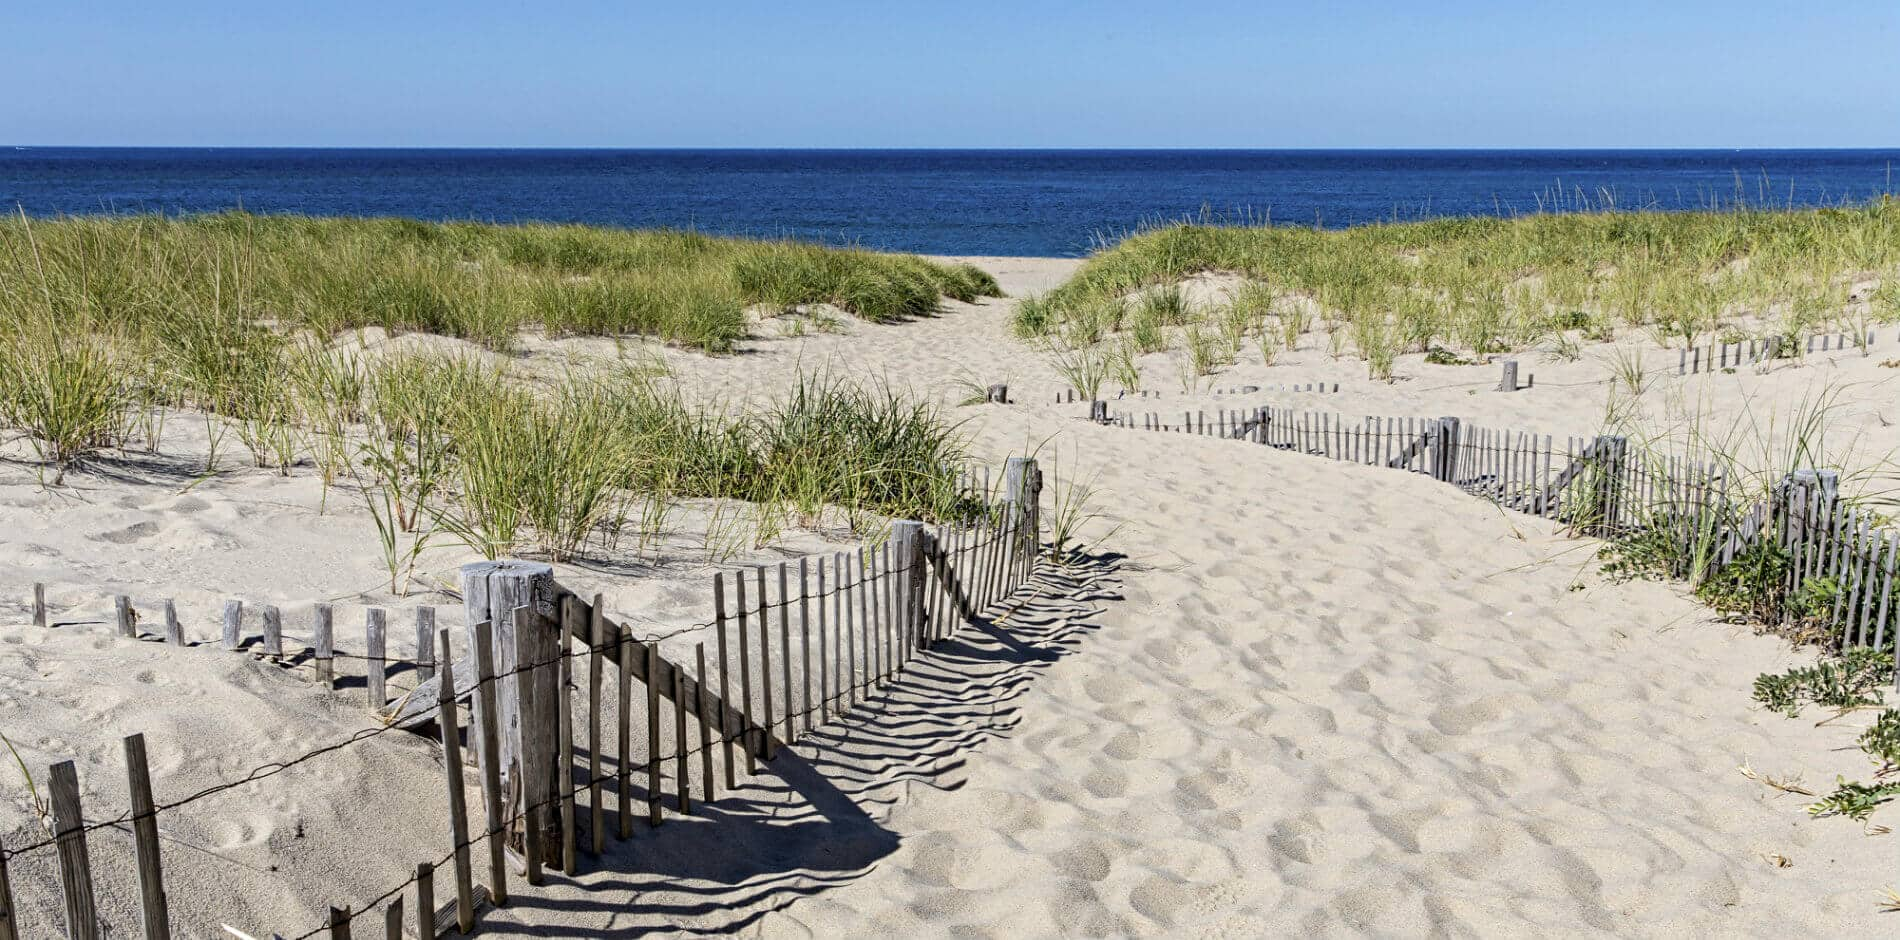 Beautiful sandy pathway surrounded by protected dunes covered in beach grass, leading to the deep blue ocean